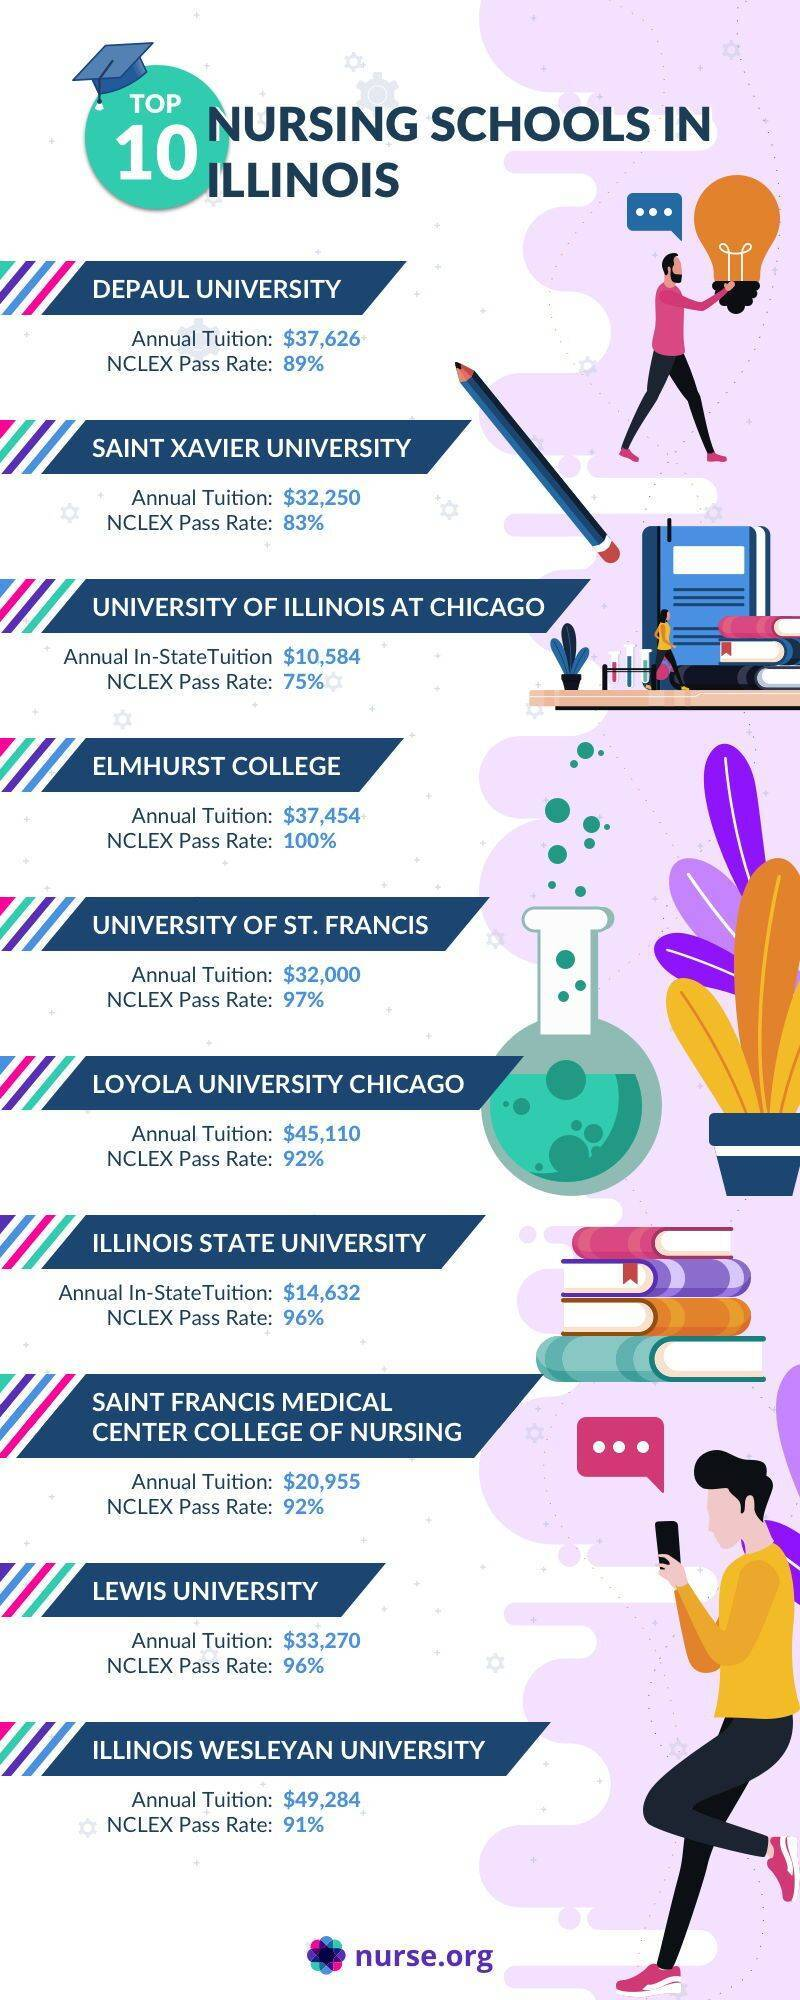 Infographic comparing the top nursing schools in Illinois